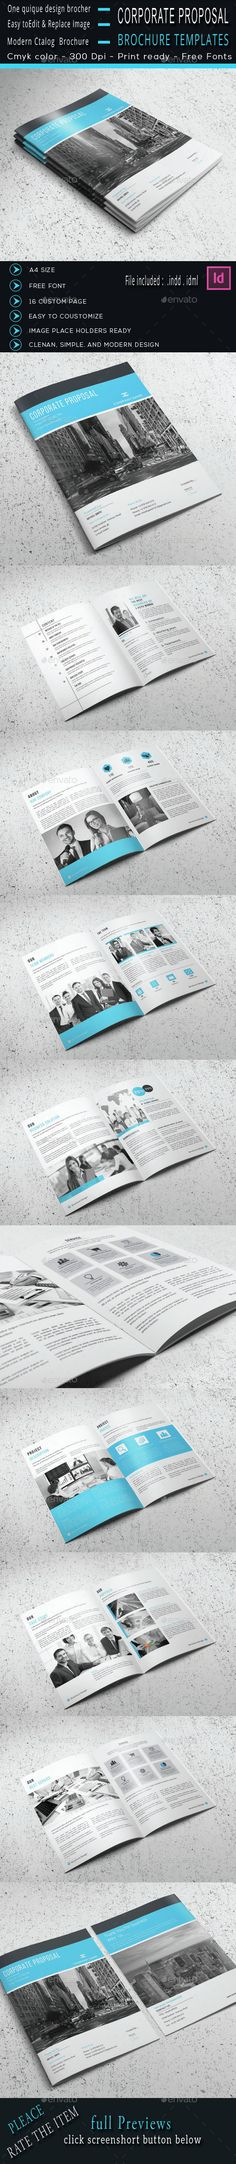 free proposal template%0A The Proposal